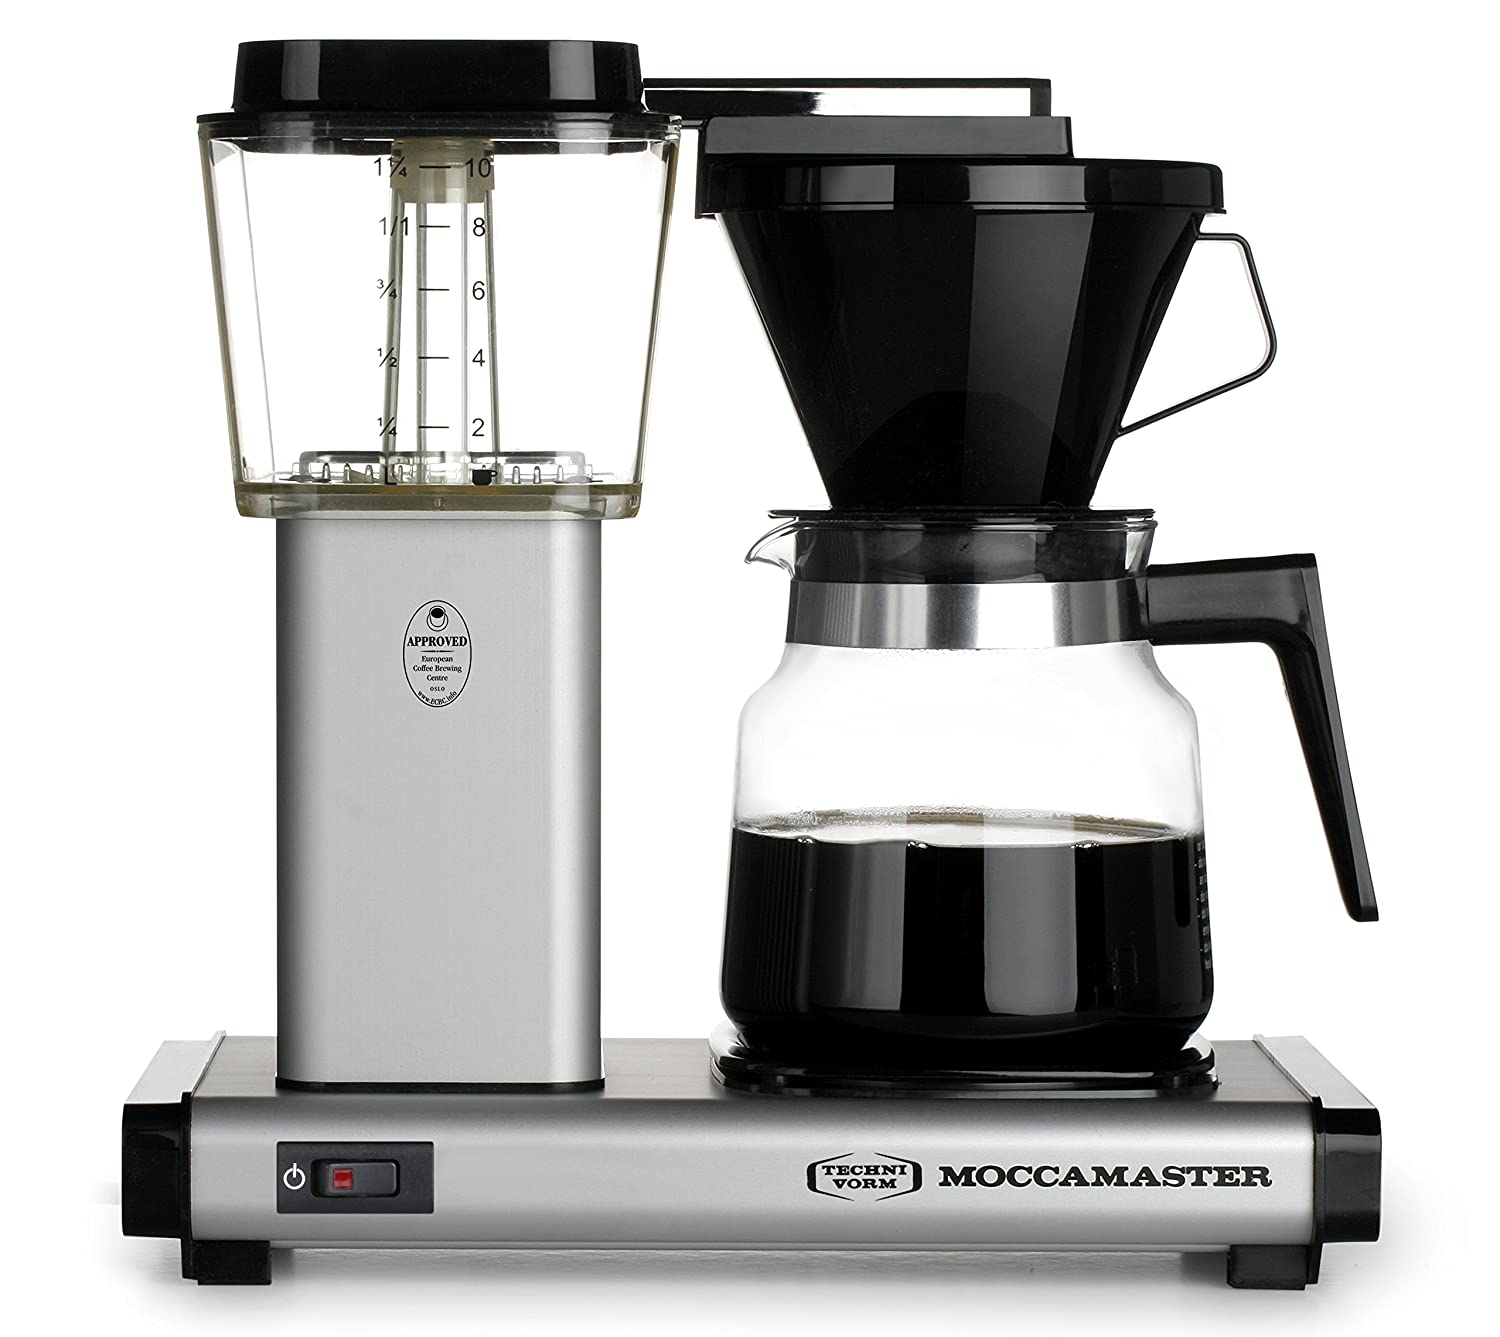 Technivorm Moccamaster 59712 K Coffee Brewer, 40 oz, Matte Silver